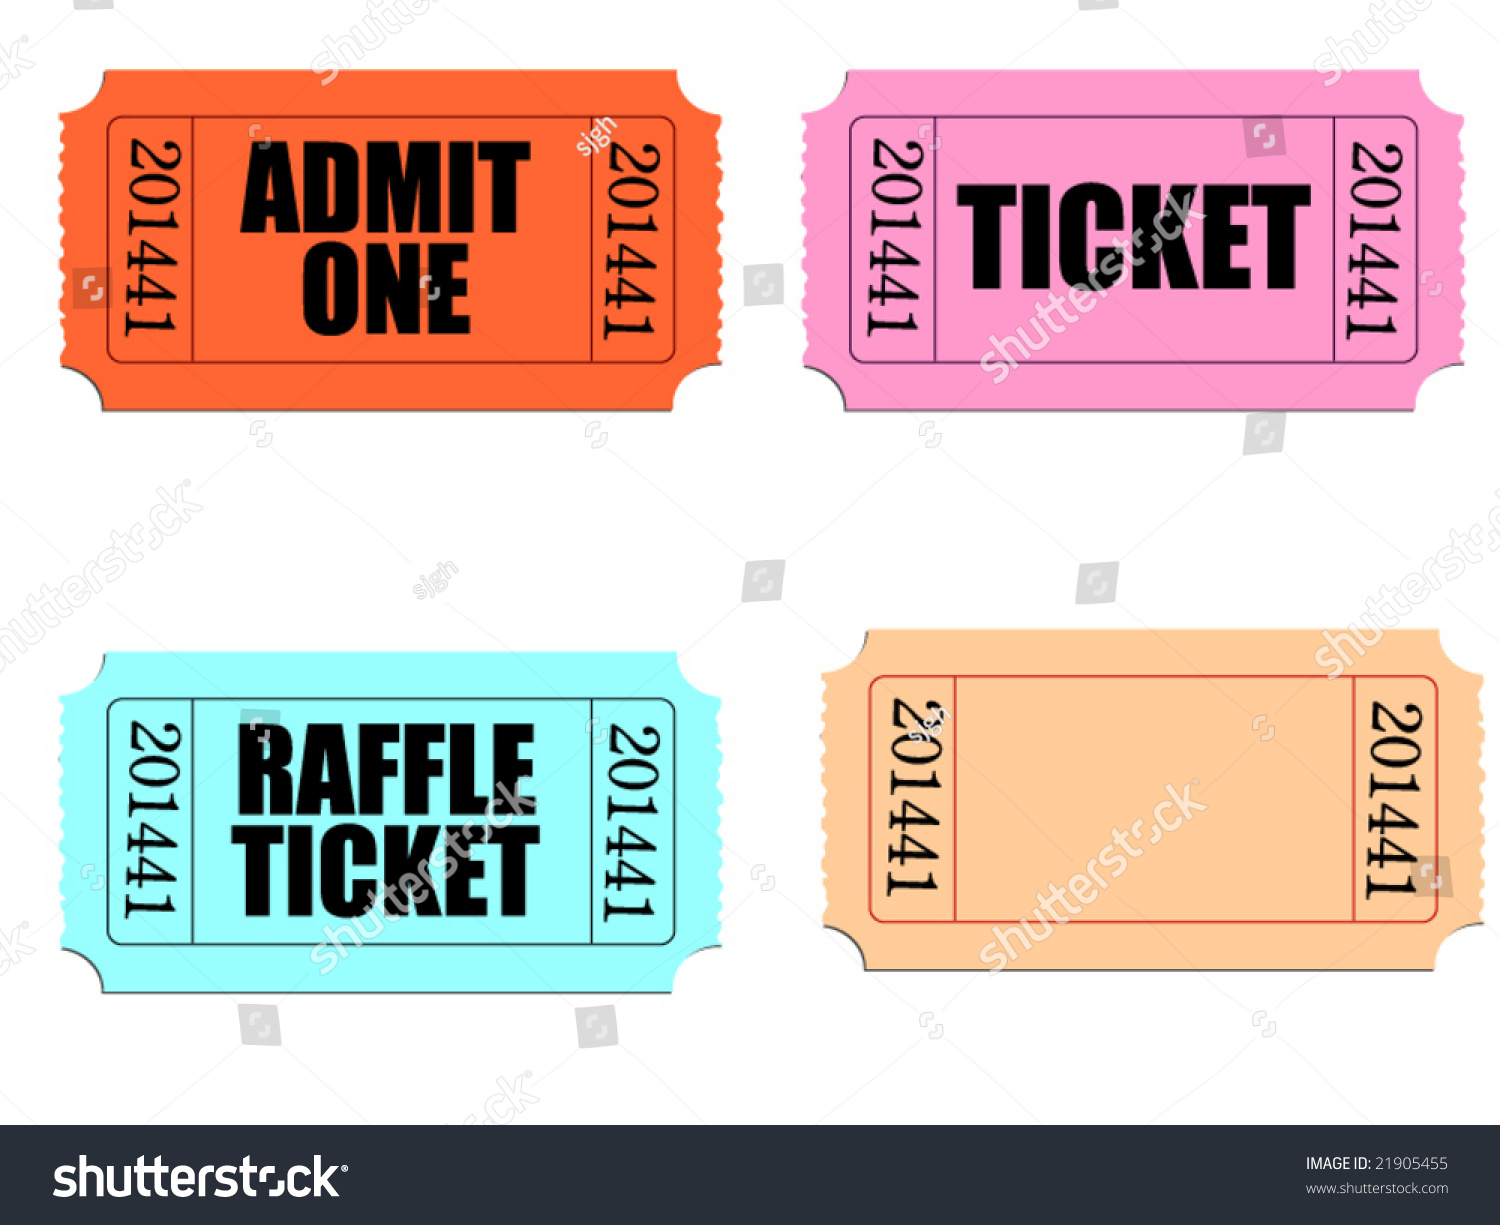 vector several tickets perforated edges customize stock vector vector of several tickets perforated edges customize blank ticket